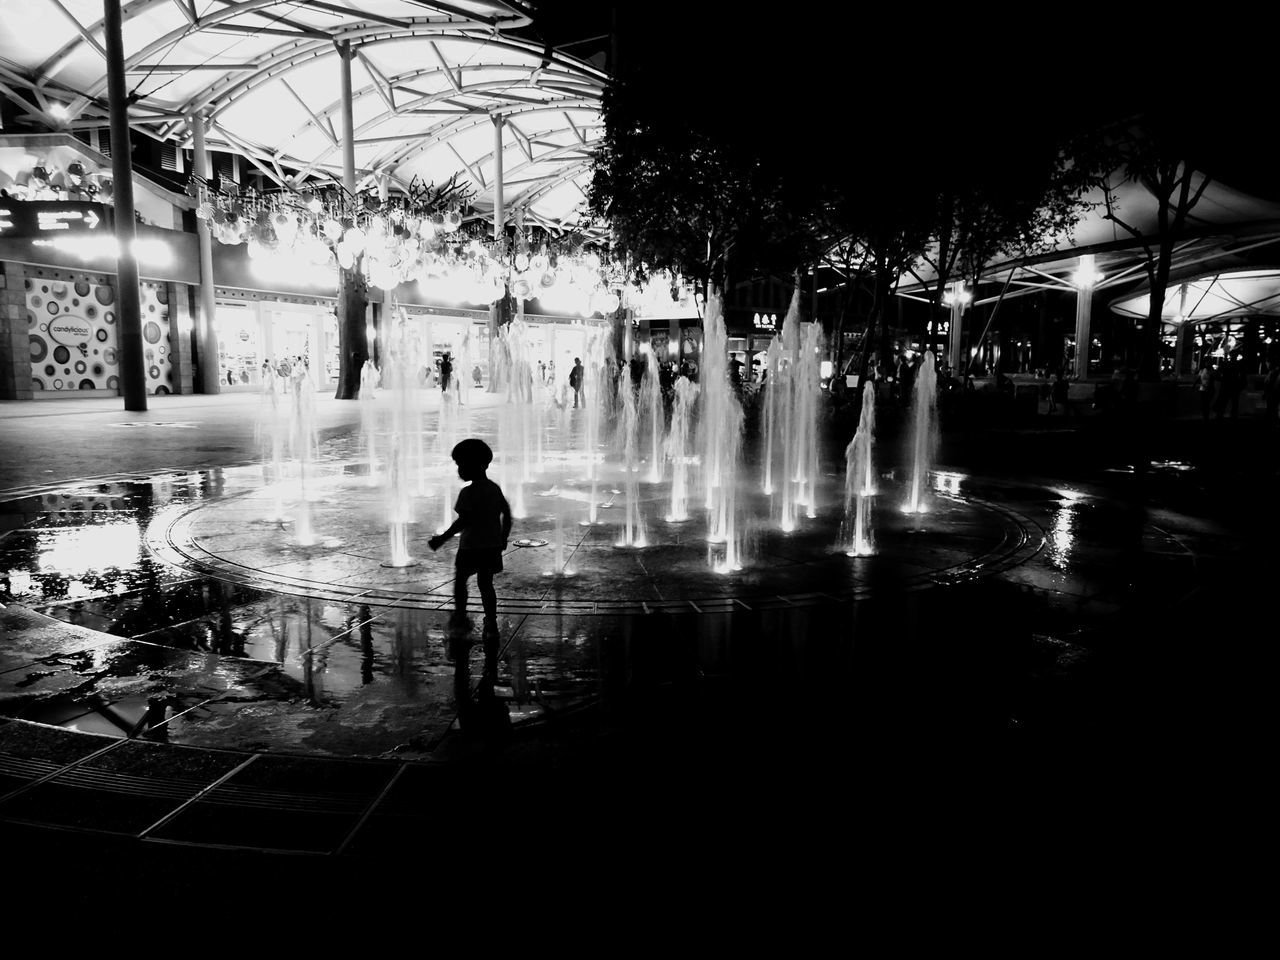 real people, water, night, architecture, one person, full length, building exterior, built structure, lifestyles, reflection, outdoors, leisure activity, illuminated, swimming pool, men, tree, boys, city, people, adult